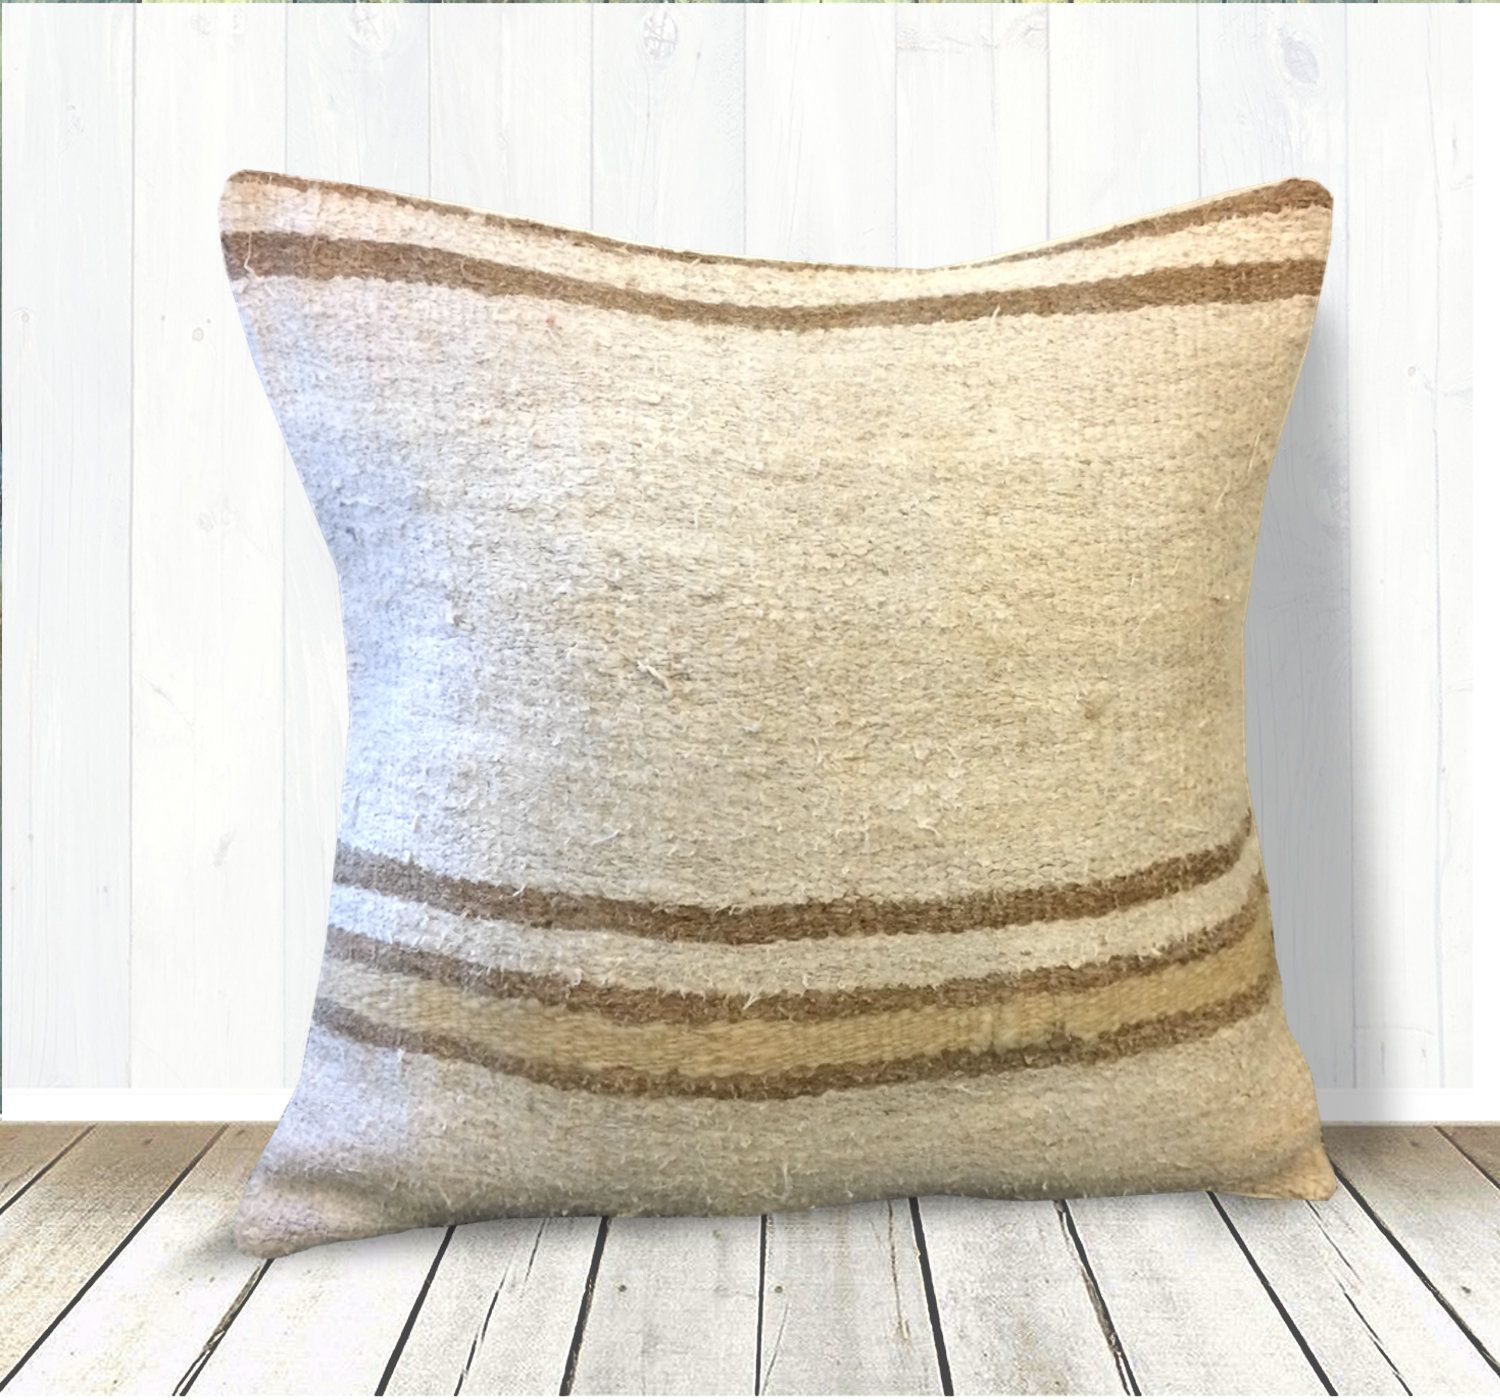 Stupendous Cream White Brown Yellow Stripe Hemp Pillow 20X20 Kilim Gmtry Best Dining Table And Chair Ideas Images Gmtryco